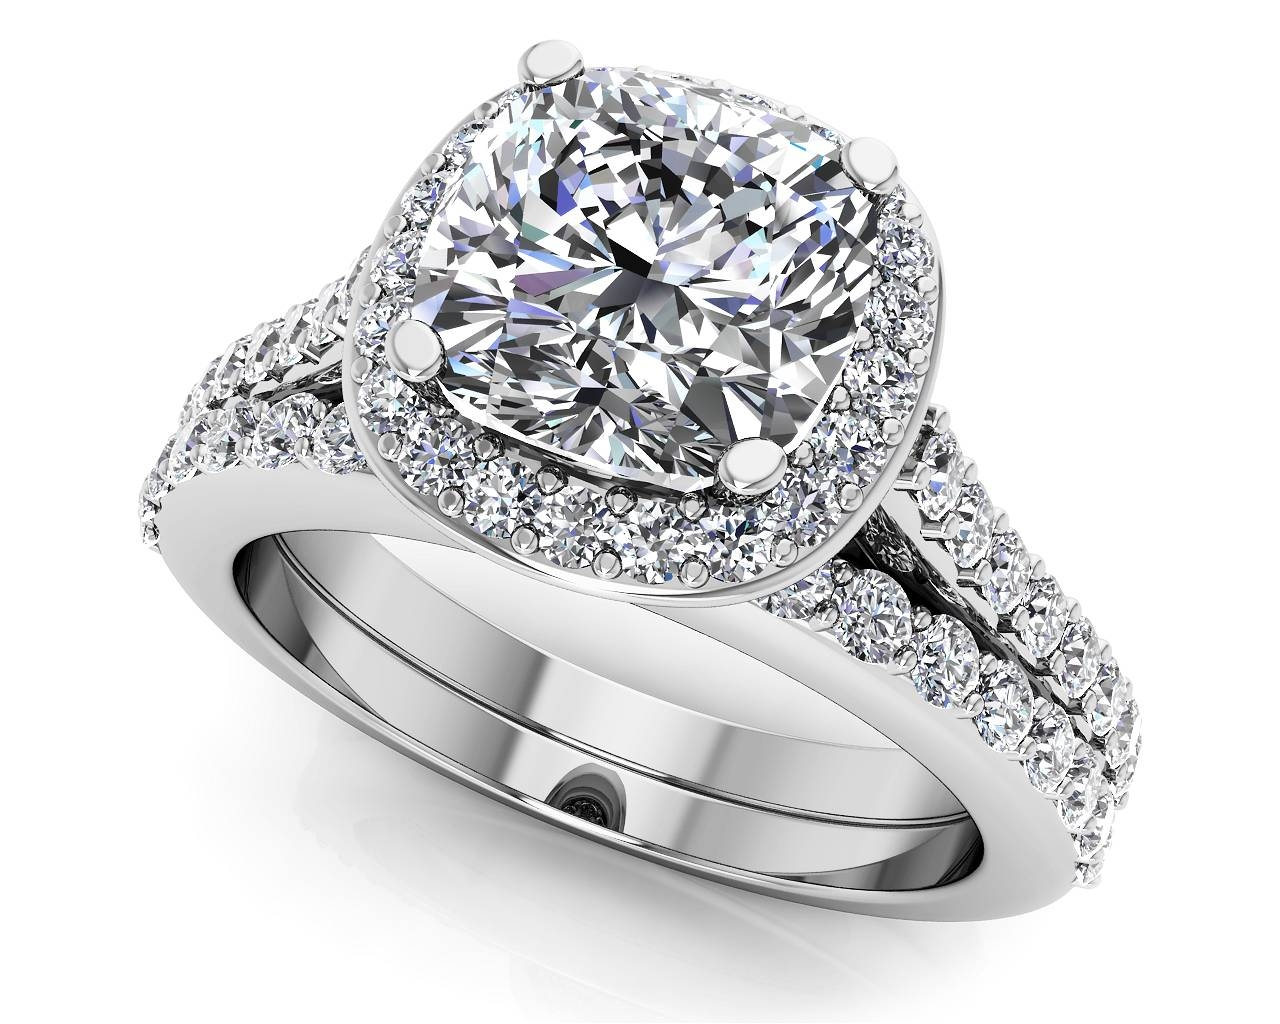 Customize Your Wedding Set & Matching Diamond Bridal Set Pertaining To Halo Diamond Wedding Band Sets (View 10 of 15)